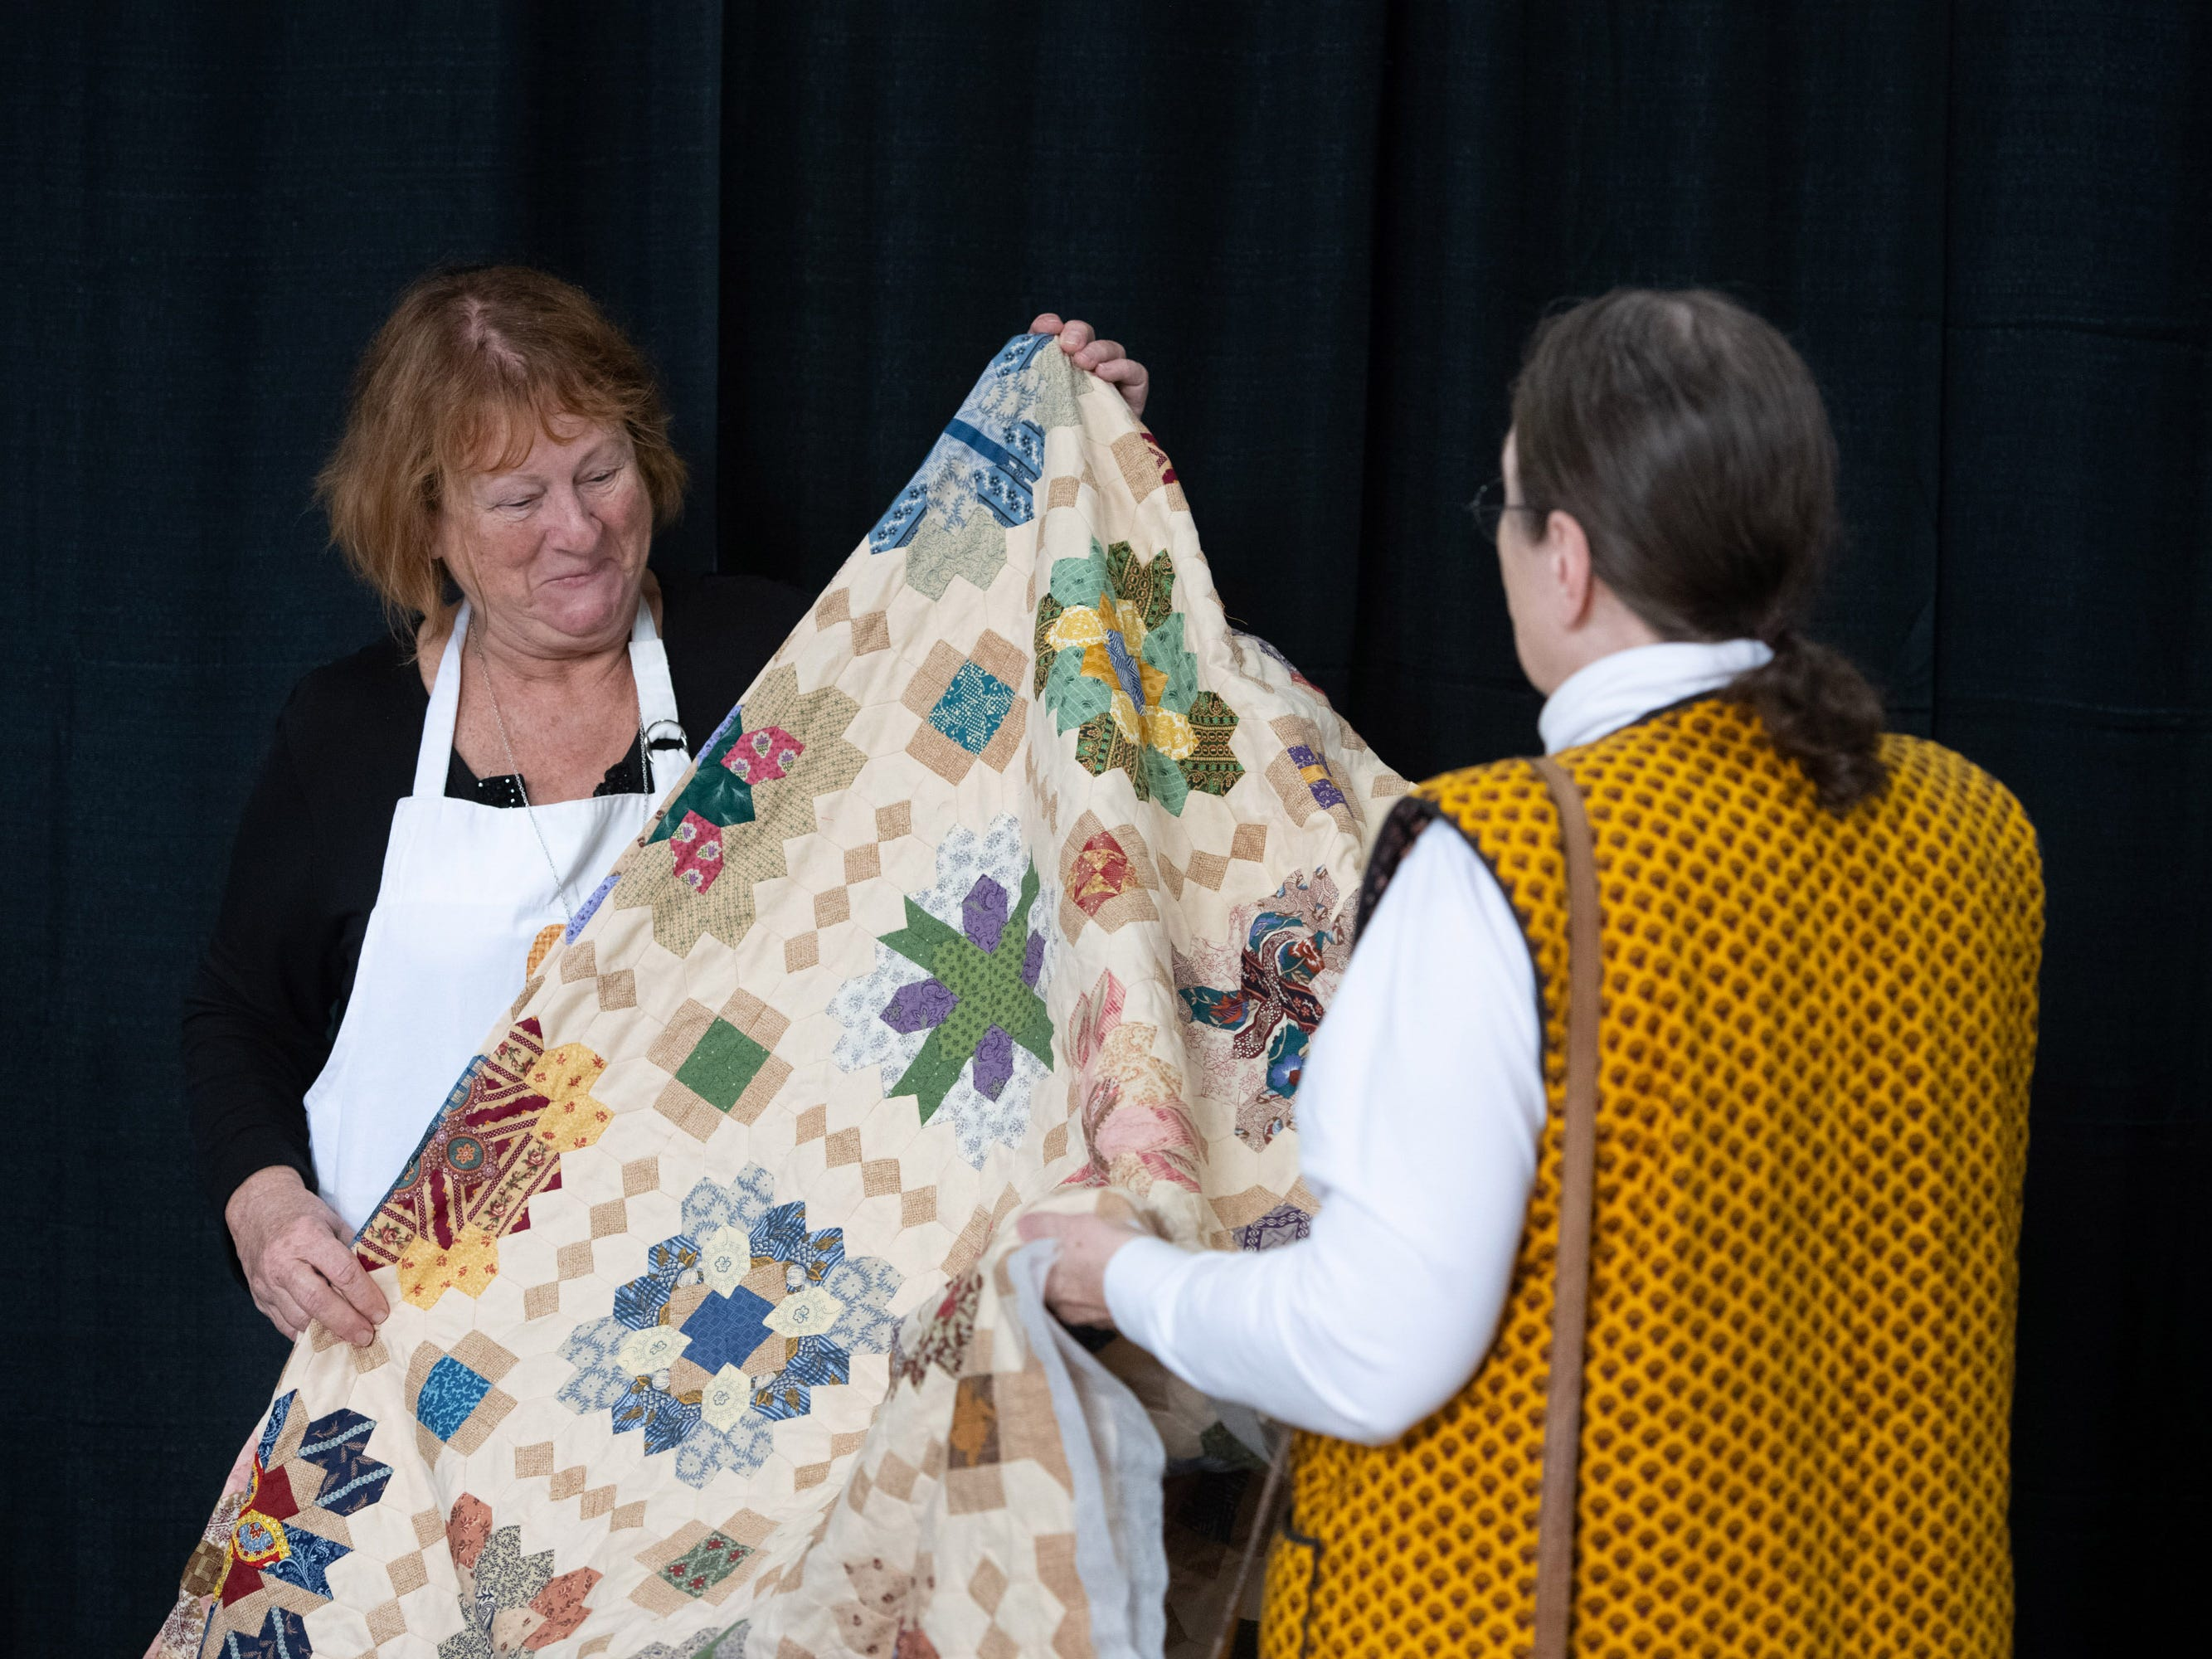 The 40th anniversary Sunbonnet Sue Quilter's Guild Show is being held at the Indian River County Fairgrounds on Friday, Feb. 8, 2019 in Vero Beach. The show continues Saturday from 10 a.m. to 4 p.m.